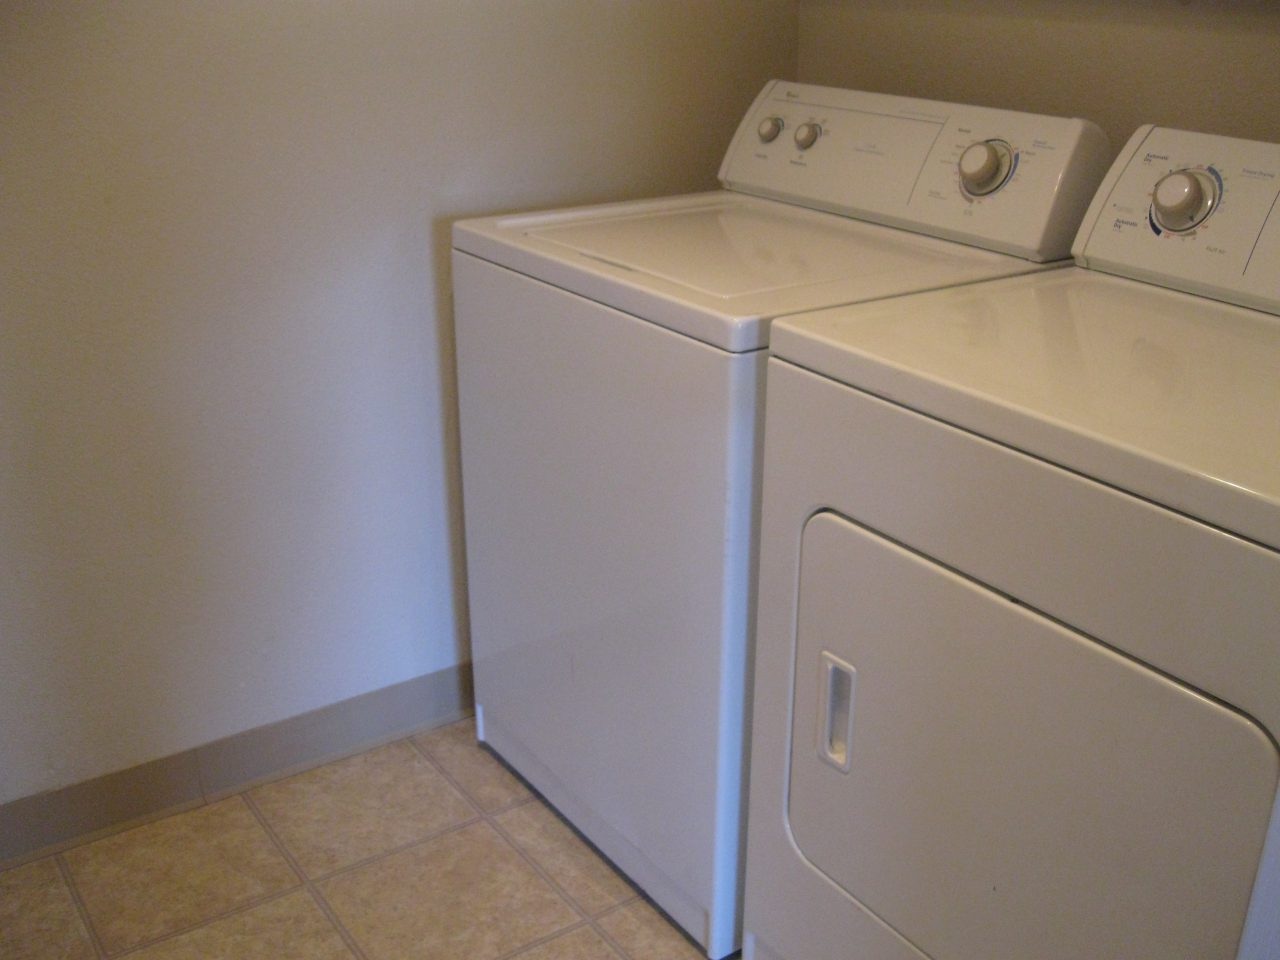 silver-creek-laundry-room-e1485140822846